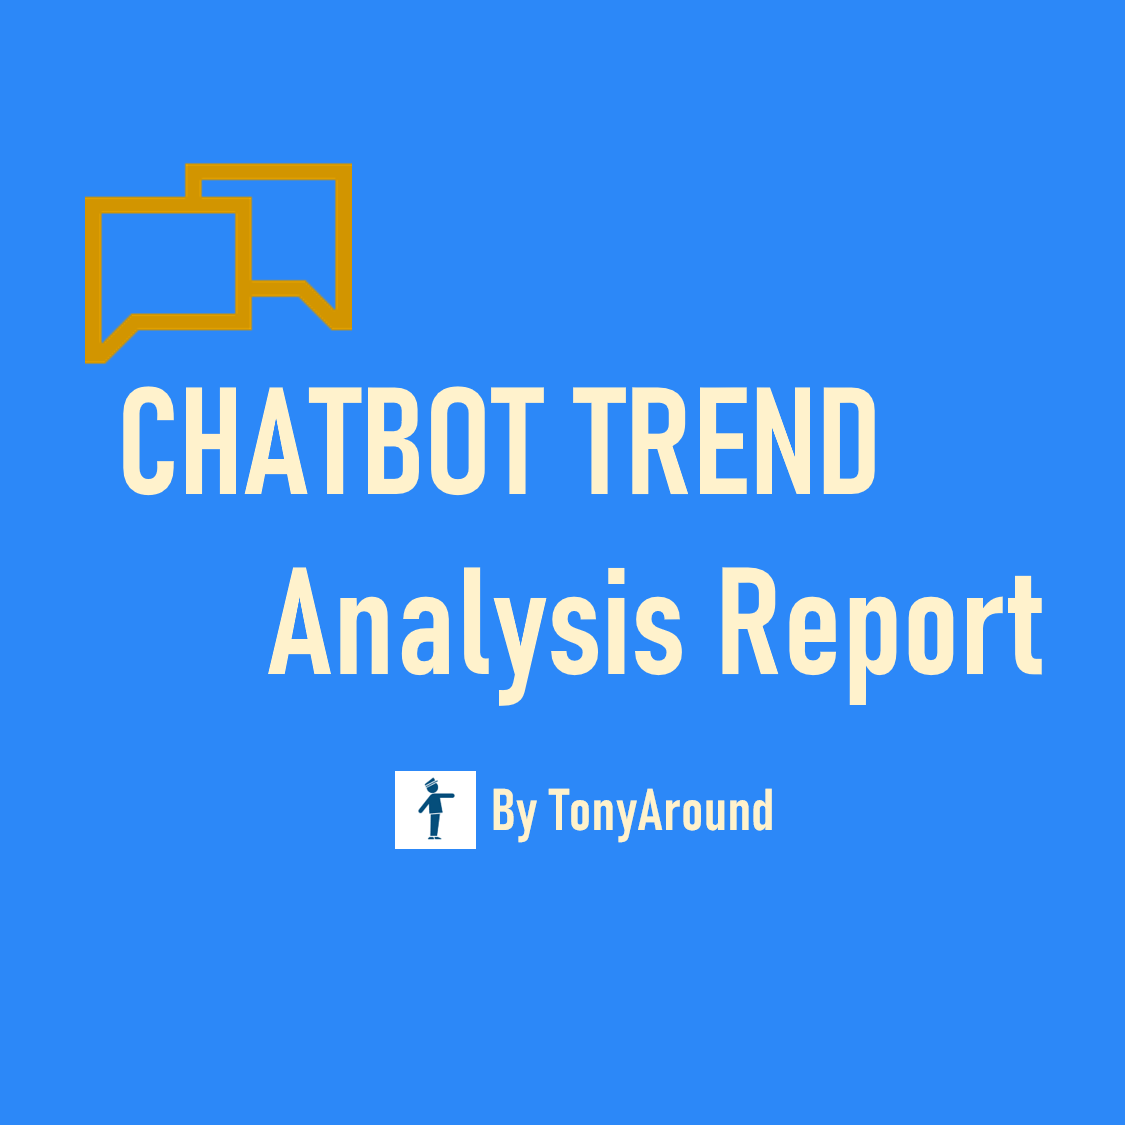 [2020년 4월]챗봇 트렌드 분석 리포트 by TonyAround / [April 2020]Chatbot Trend Analysis Report by TonyAround